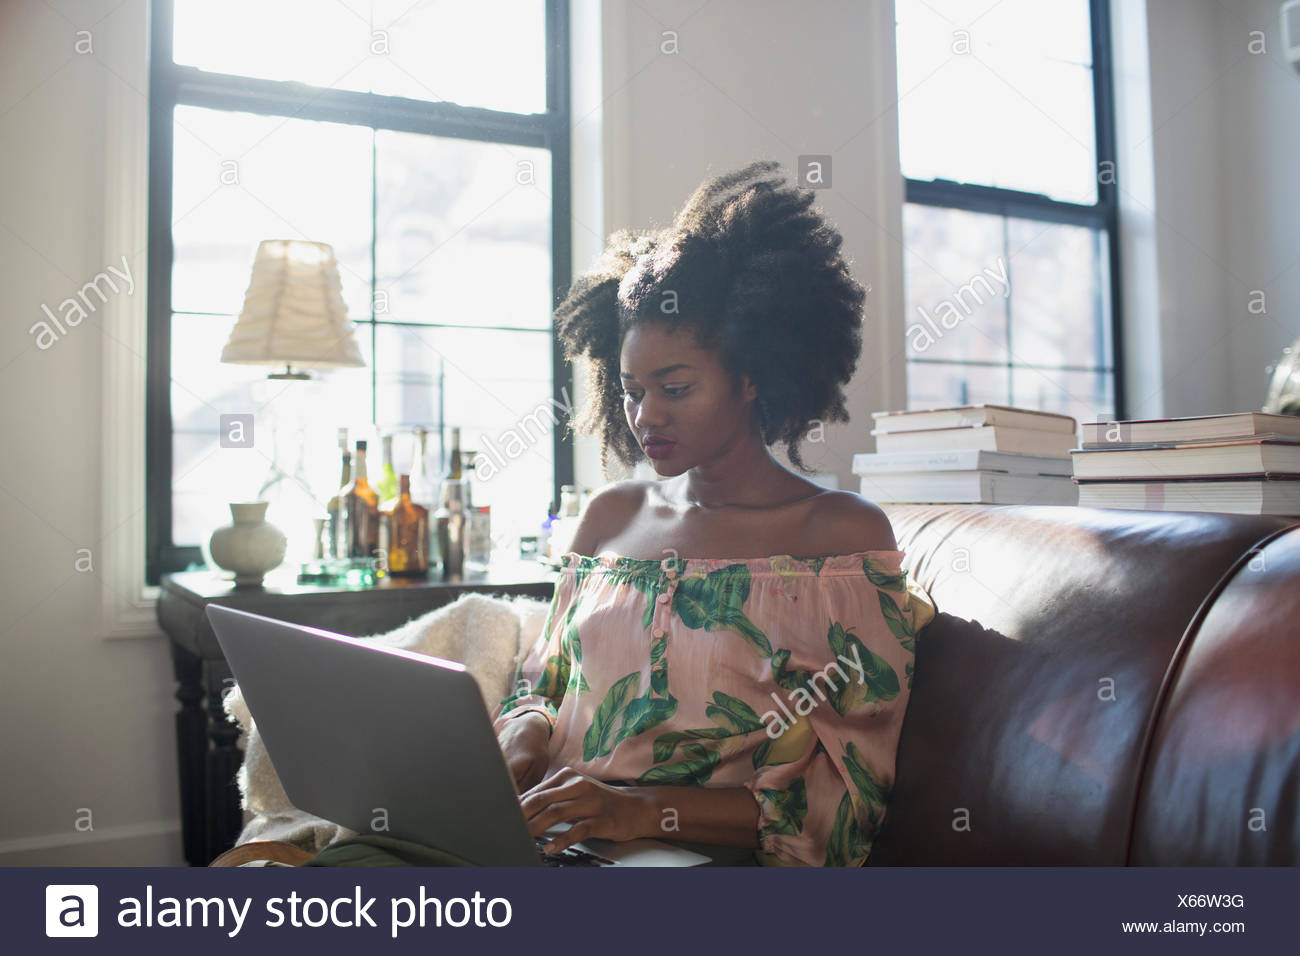 A young woman with a laptop - Stock Image